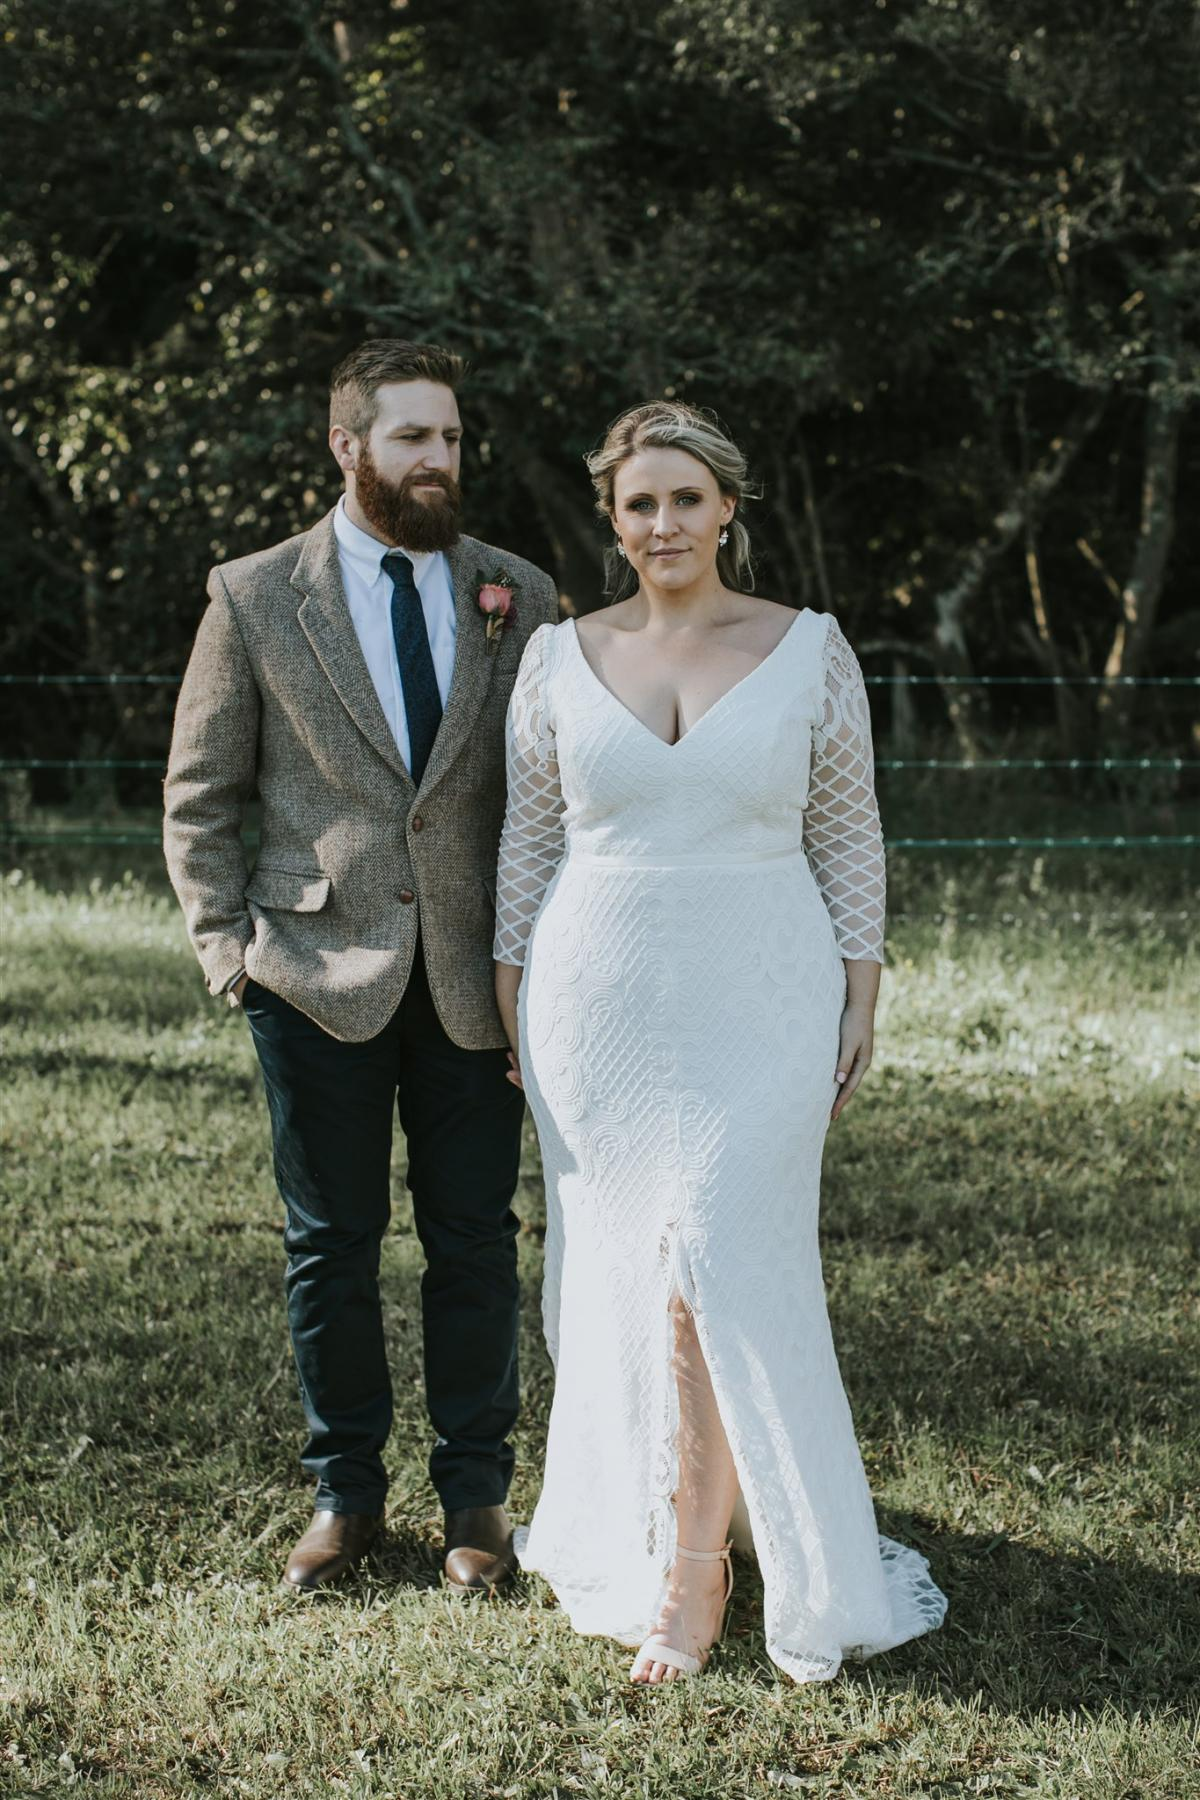 Curvy real bride Lucy wears the Bobby gown to wedding reception; a modern lace wedding dress with custom sleeves by Karen Willis Holmes.